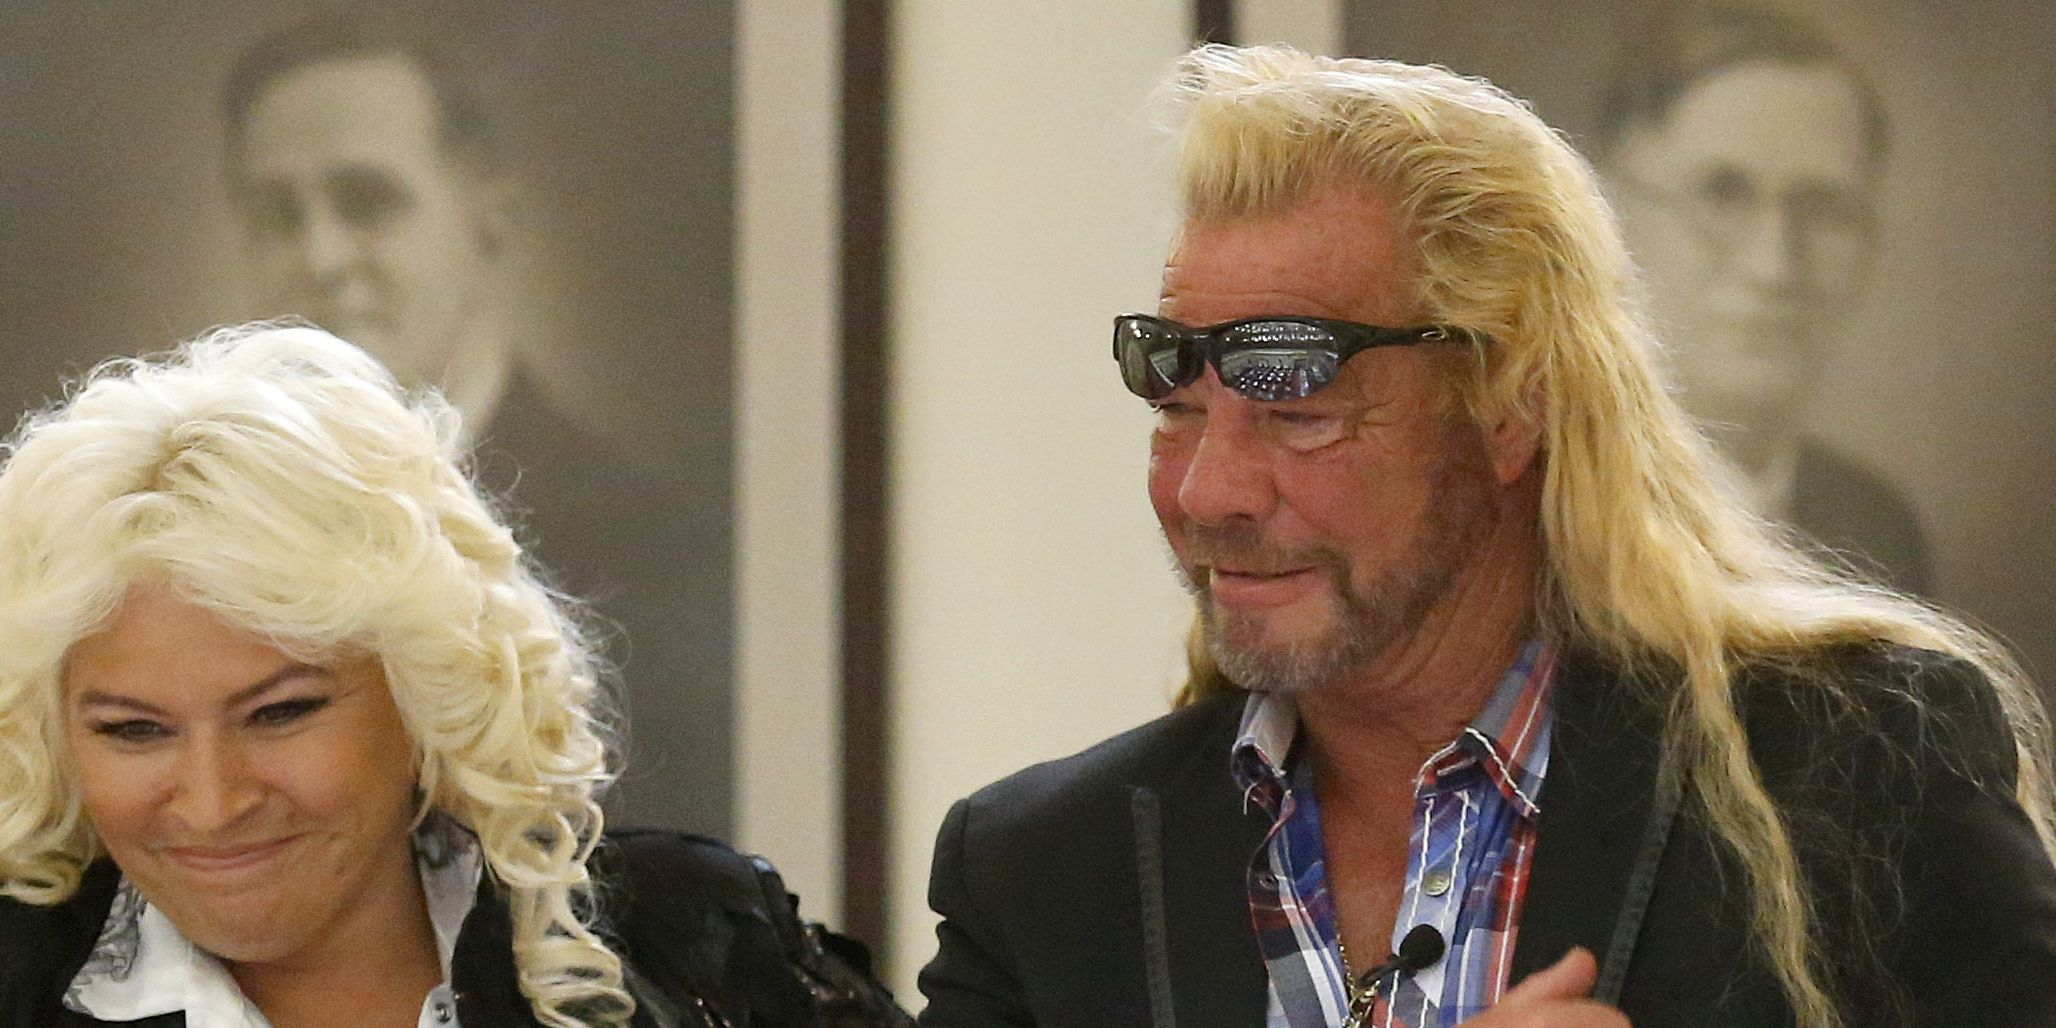 'Dog the Bounty Hunter' will reportedly join manhunt for Mansfield fugitive who threatened President Trump